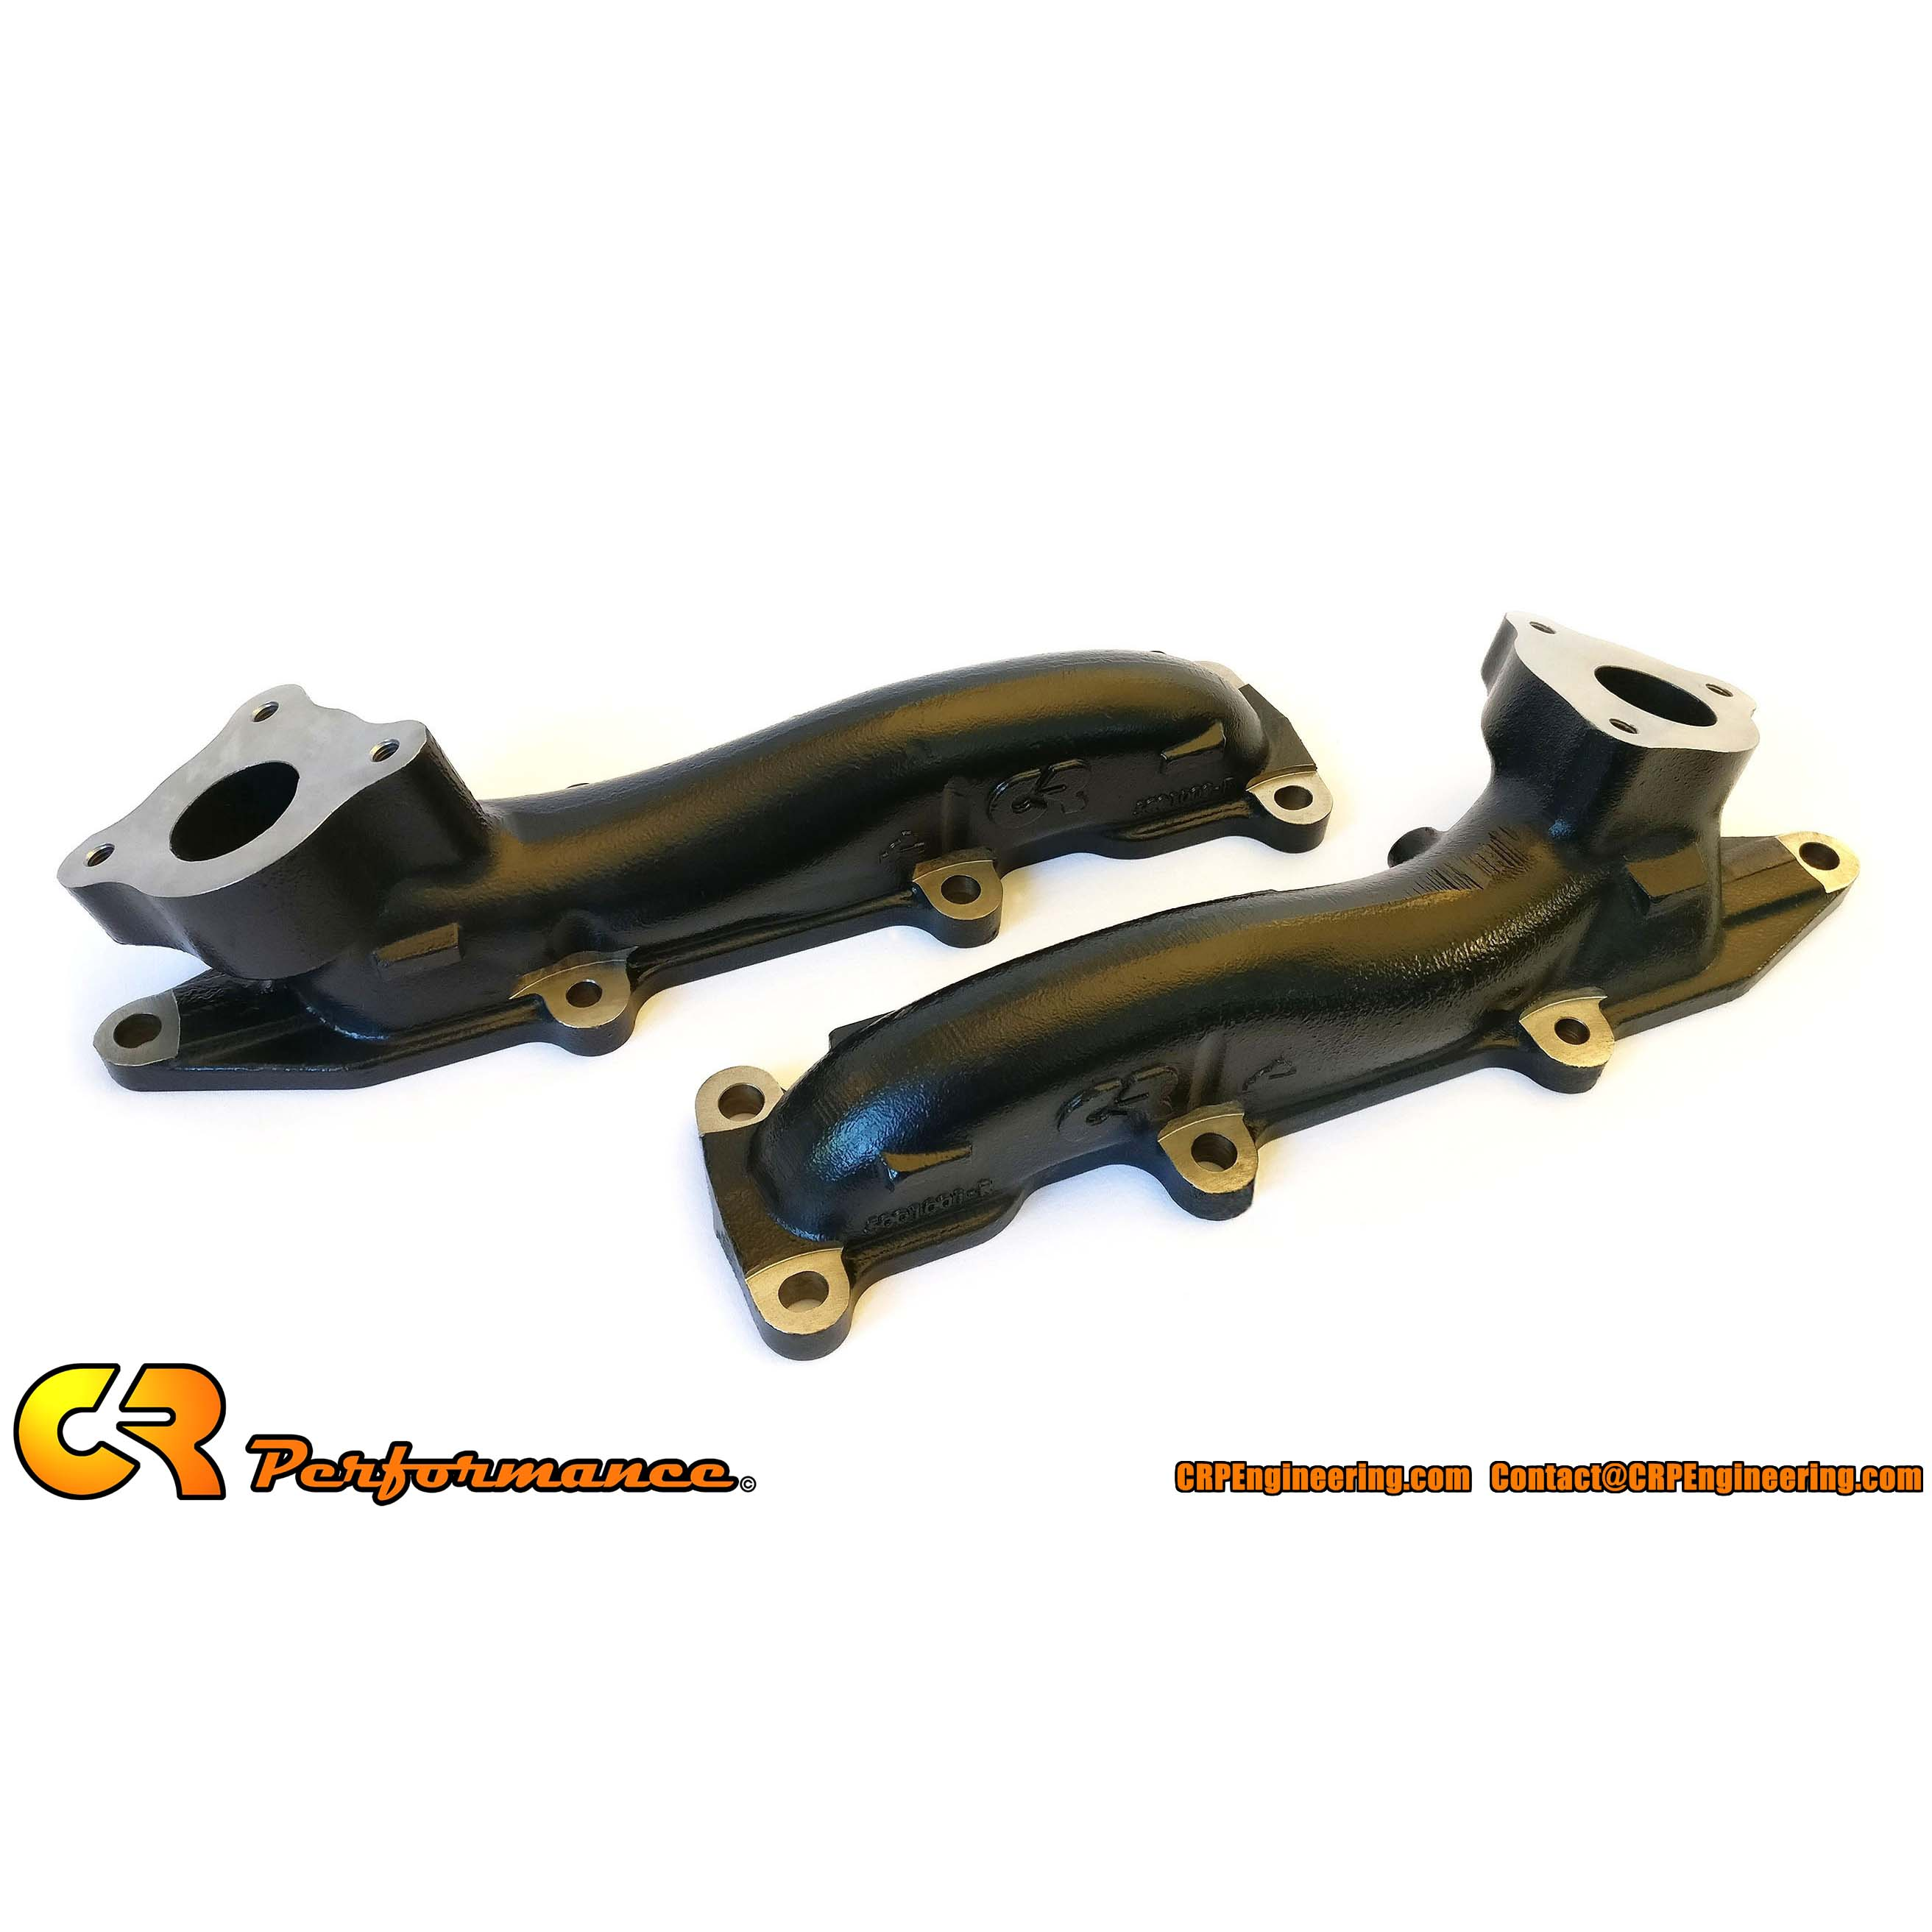 5.4 Ford F150 Expedition 2008 2009 2010 2011 New Exhaust Manifold Set